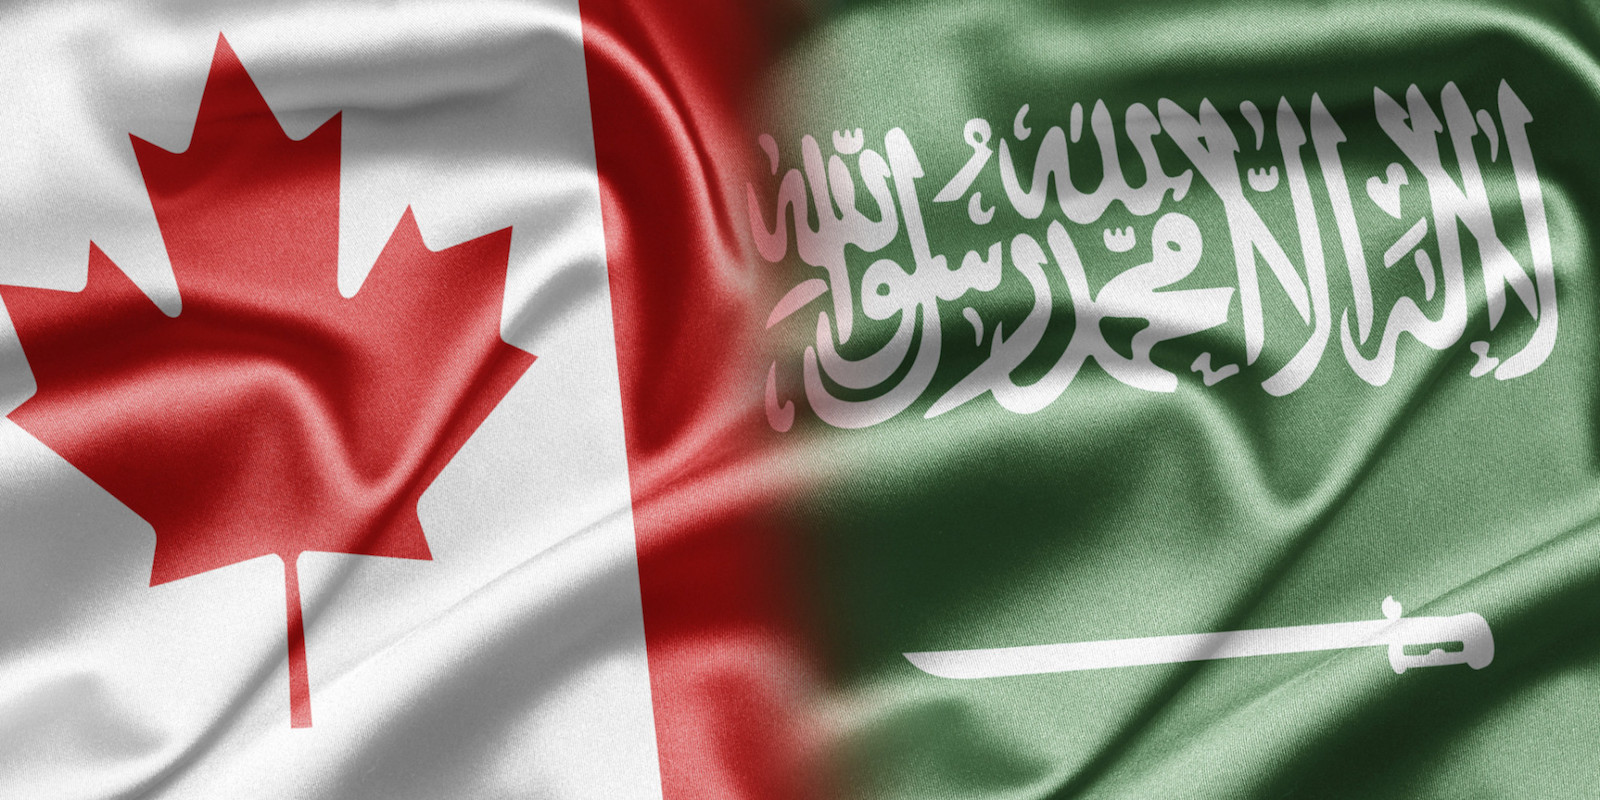 Canadians Keep Asking Questions About Saudi Arms Deal, Canadians Keep Asking Questions About Saudi Arms Deal